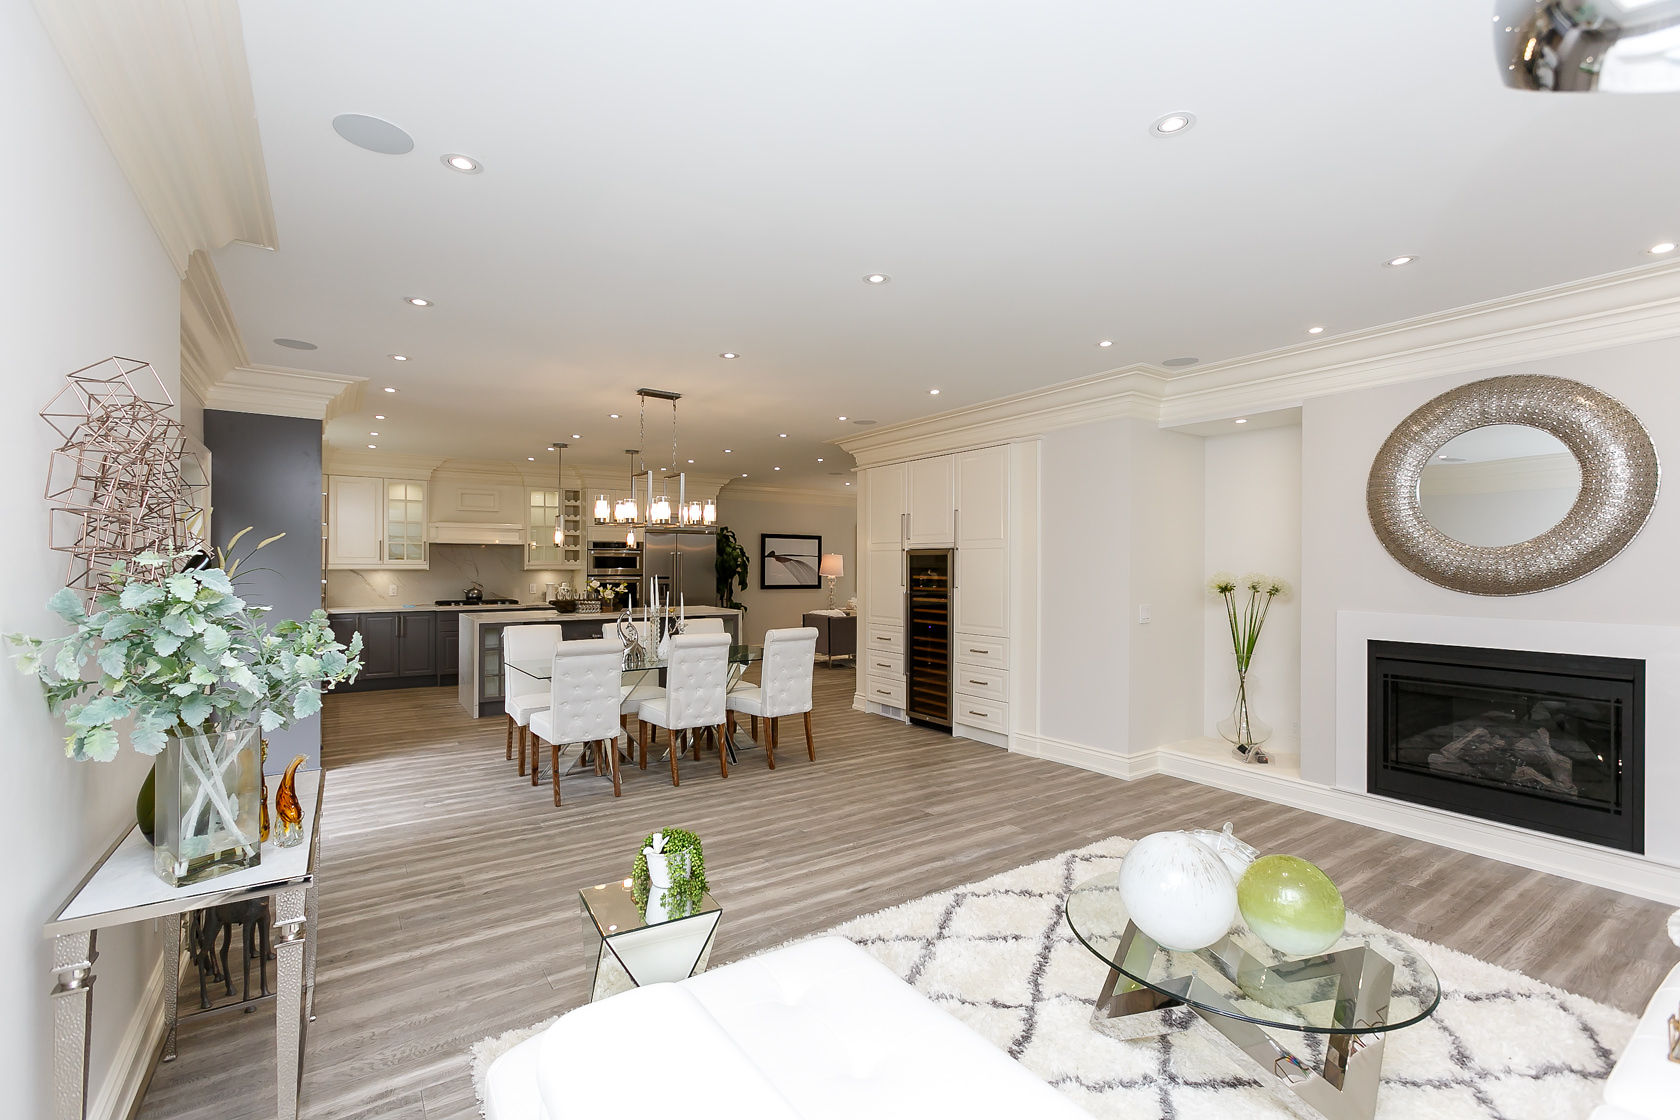 Fireplace, Dining Room and Kitchen, 49 Rossburn, Etobicoke Home Staging